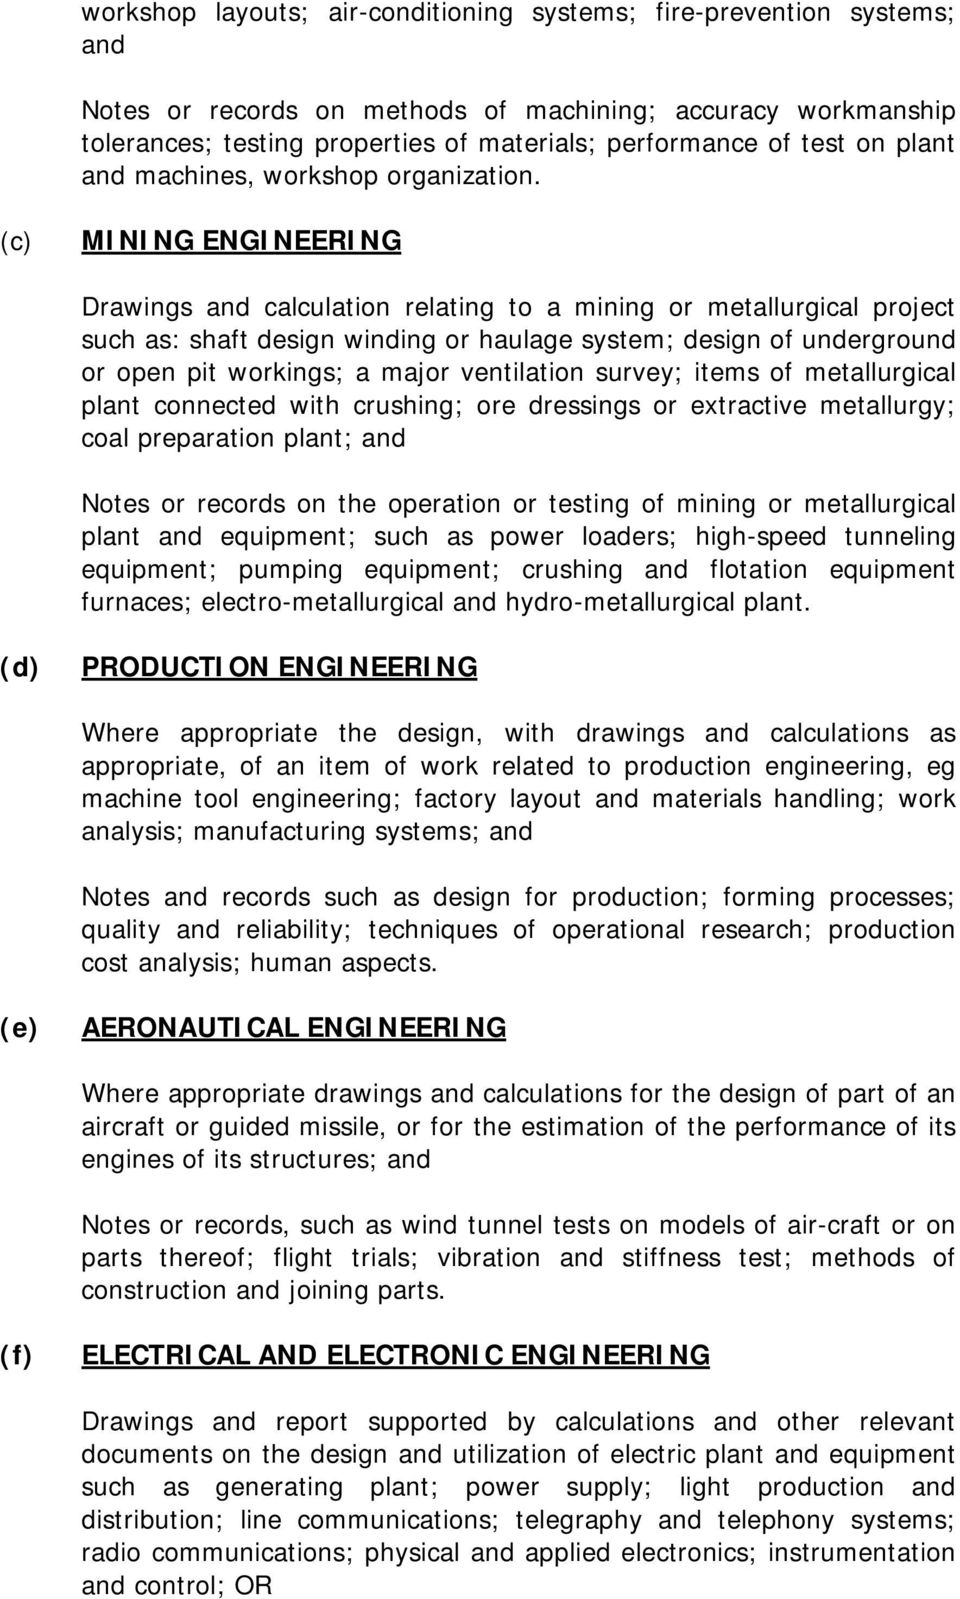 (c) MINING ENGINEERING Drawings and calculation relating to a mining or metallurgical project such as: shaft design winding or haulage system; design of underground or open pit workings; a major